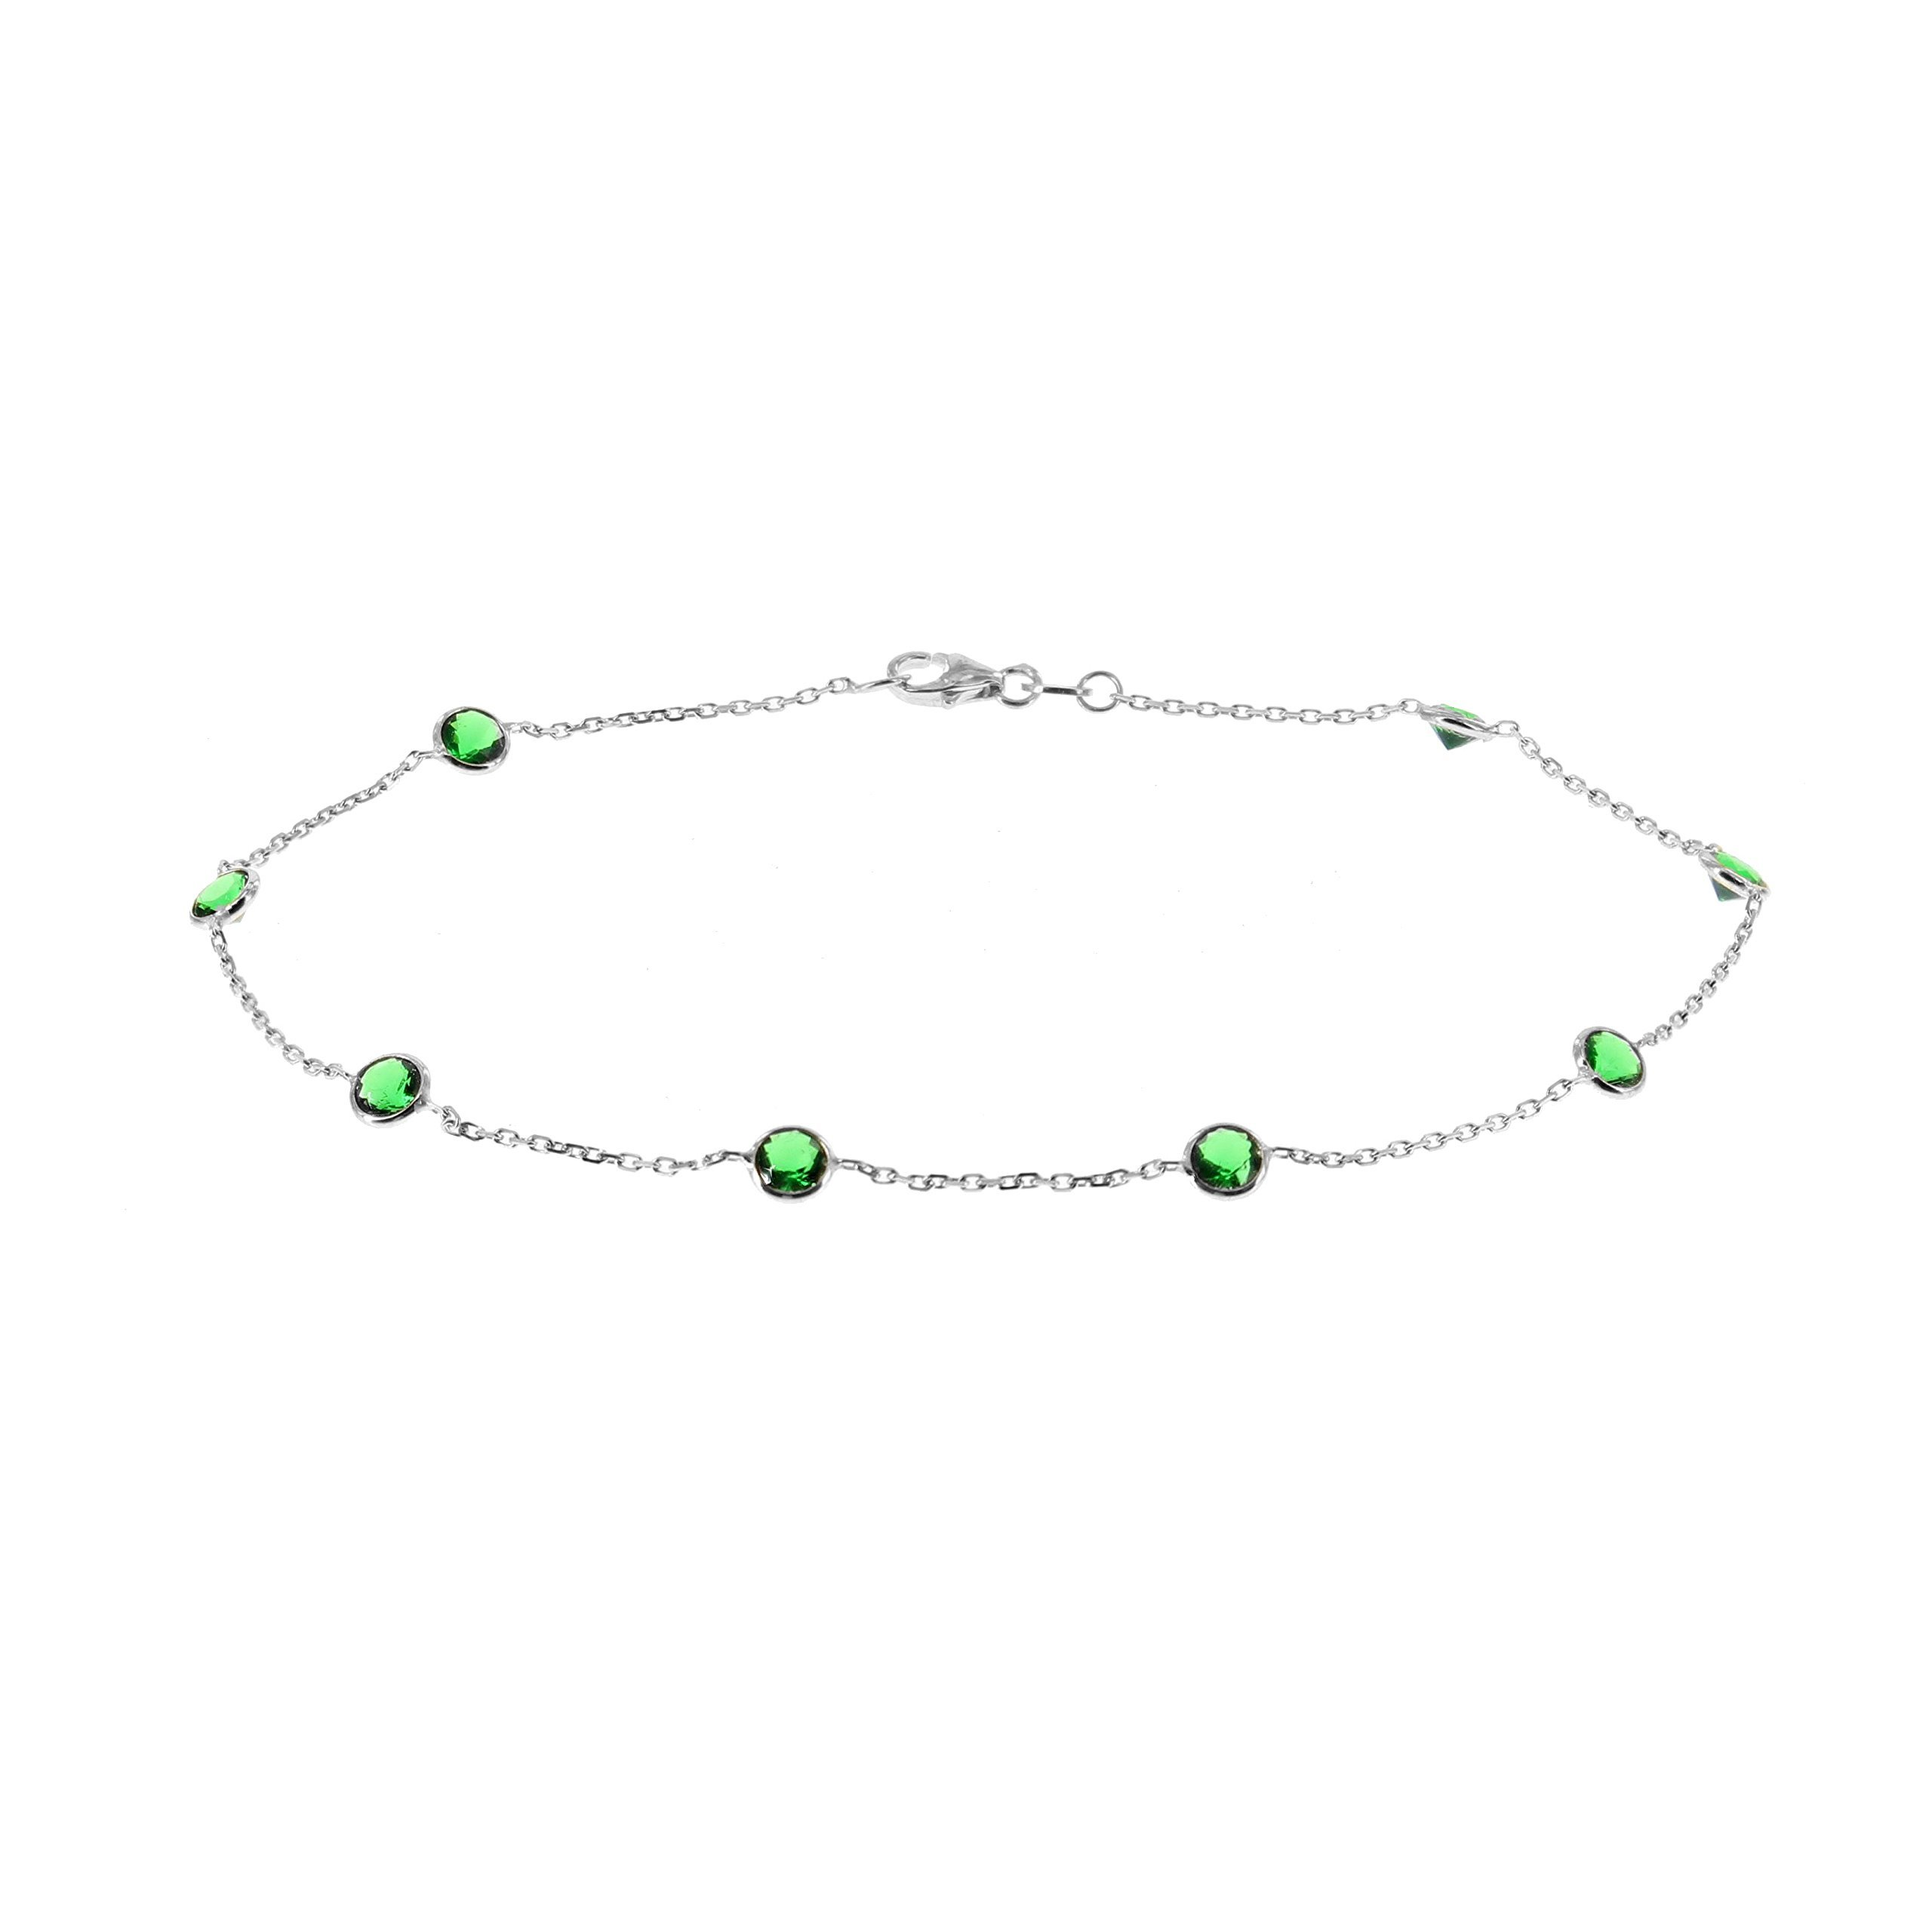 14k White Gold Ankle Bracelet With Green Cubic Zirconia By (9 - 11 inches)